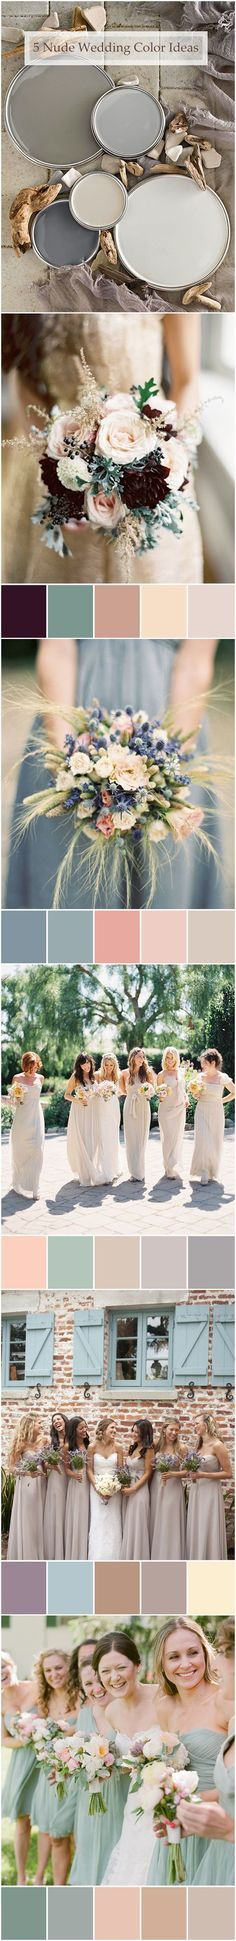 top 6 trending nude neutral wedding color ideas /search/?q=%23weddingcolors&rs=hashtag /search/?q=%23weddingideas&rs=hashtag